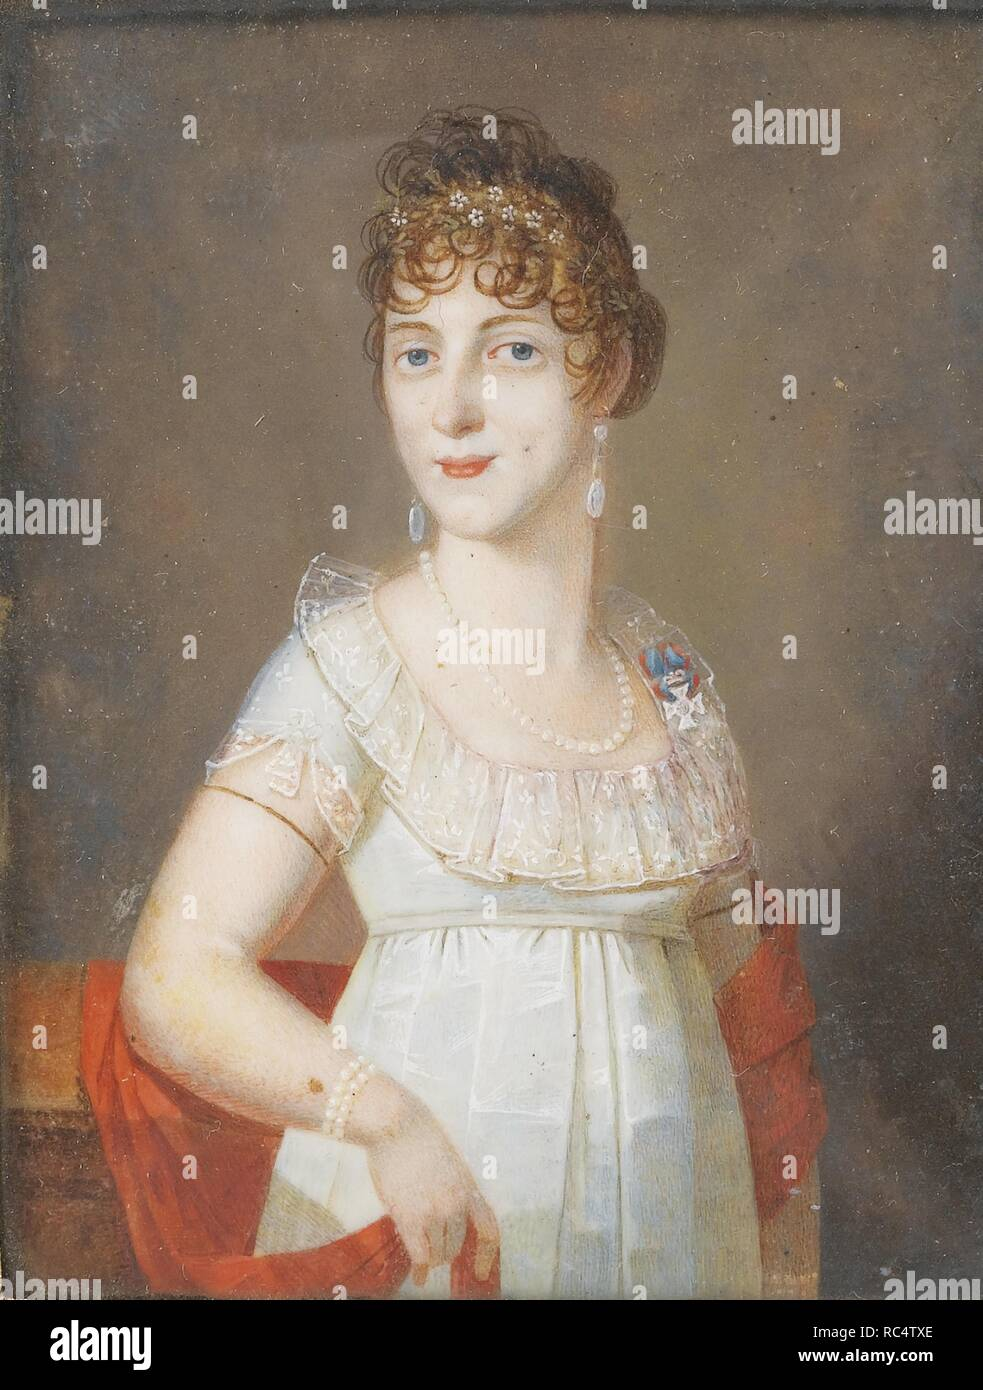 Duchess Maria Elisabeth in Bavaria (1784-1849), Princess of Wagram. Museum: PRIVATE COLLECTION. Author: ANONYMOUS. Stock Photo